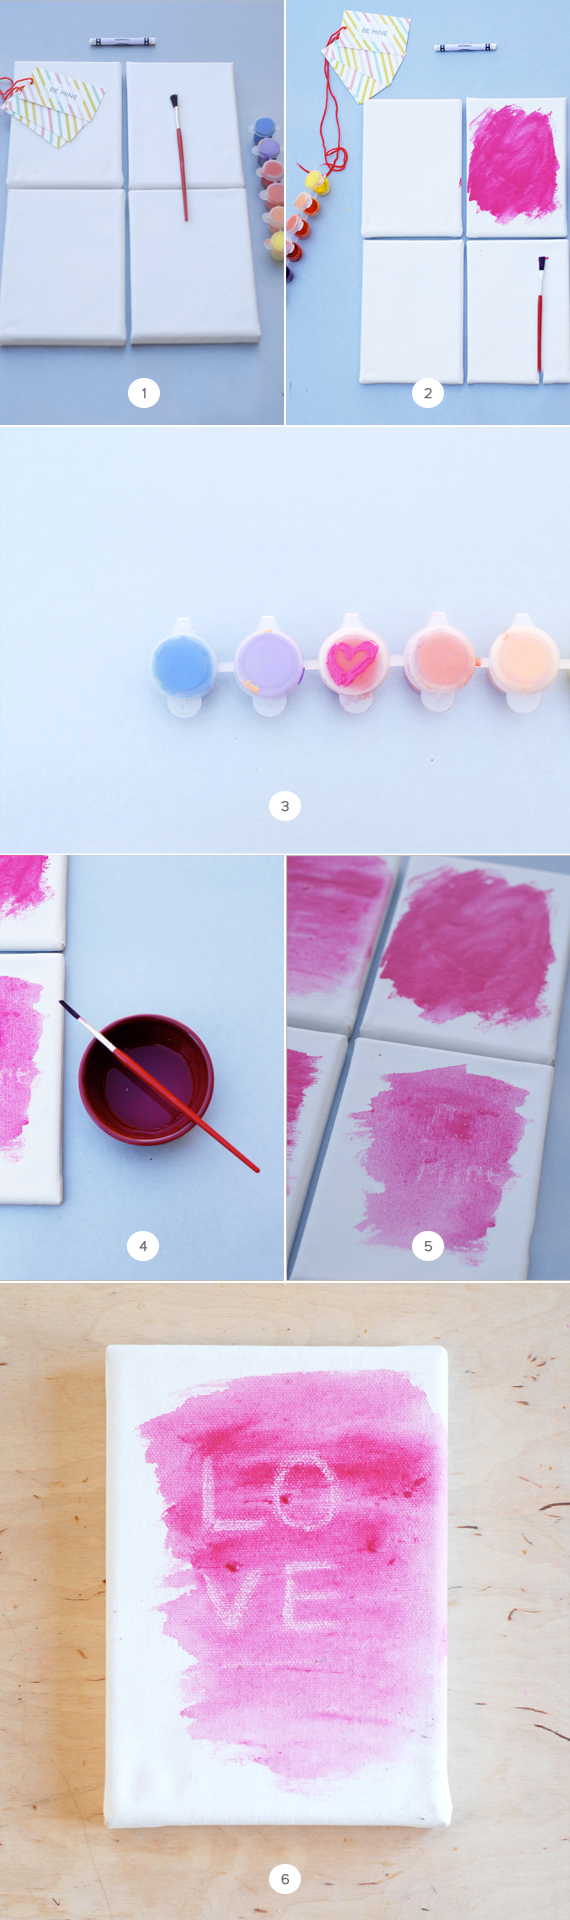 secret valentine diy project